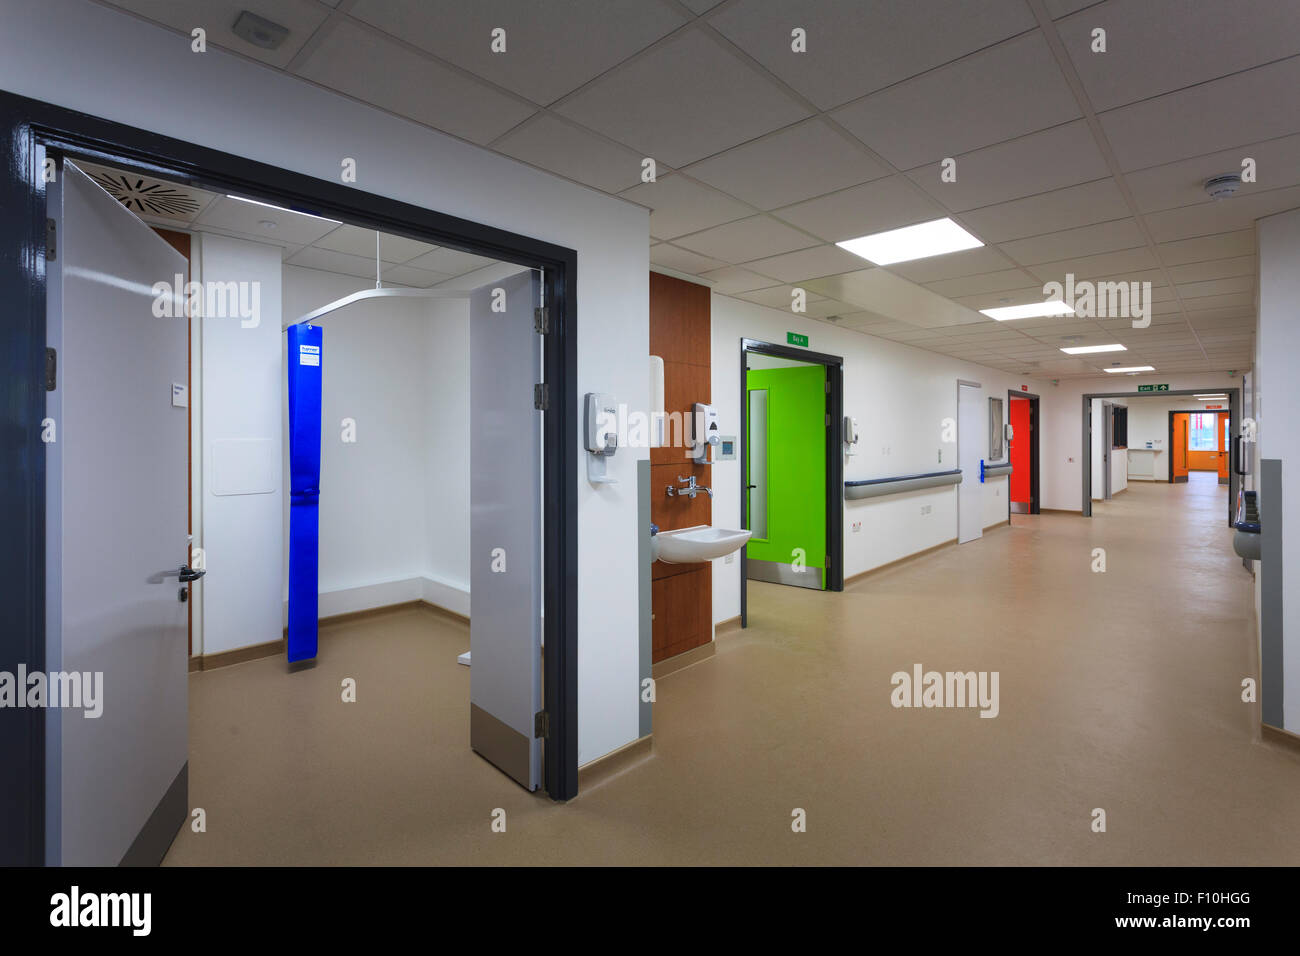 new hospital corridor without people - Stock Image